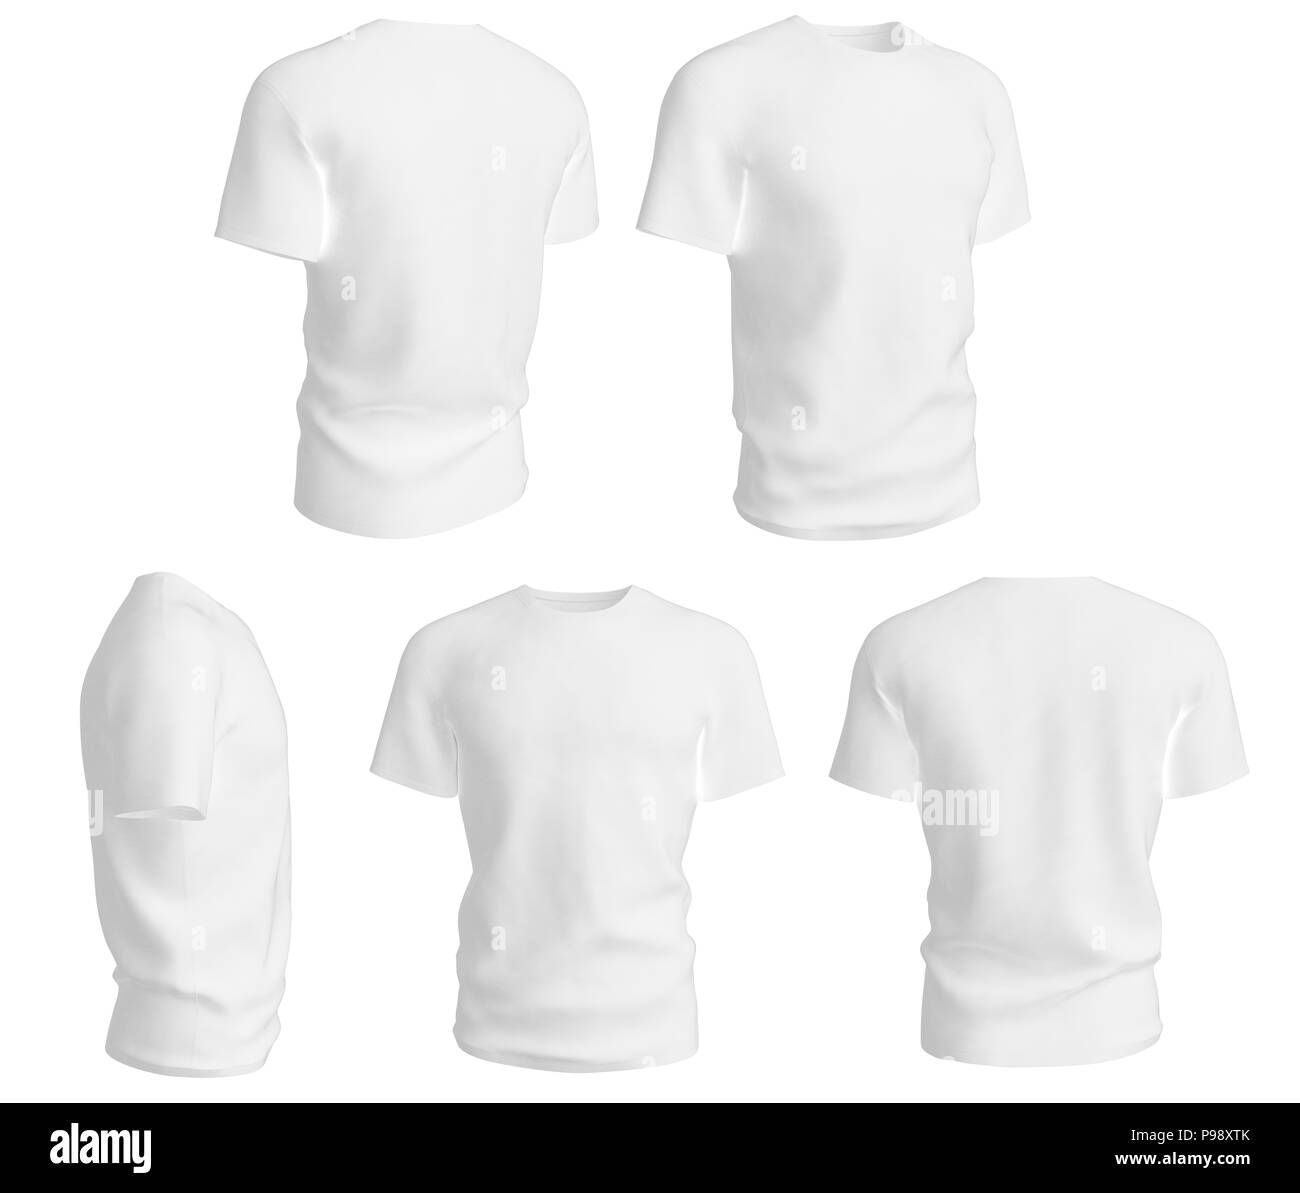 Set Of Man White T Shirts Design Template Isolated On White